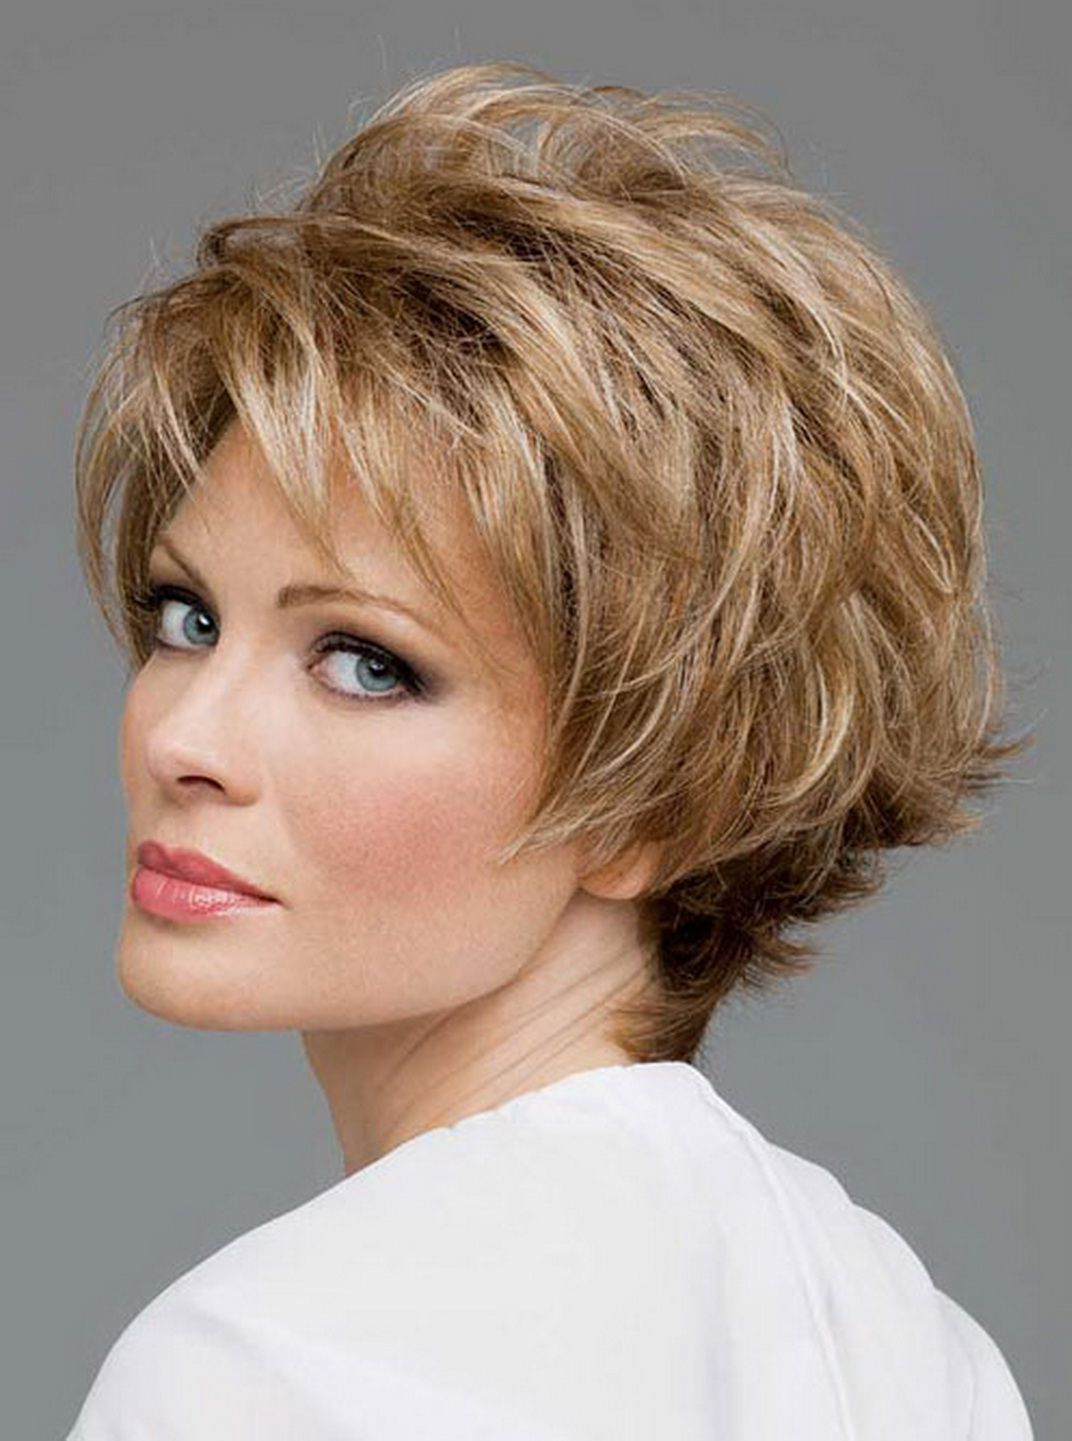 Edgy+Hairstyles+For+Over+60 | Trendy Short Hair Trends Haircuts For Inside Trendy Short Haircuts For Fine Hair (View 17 of 25)